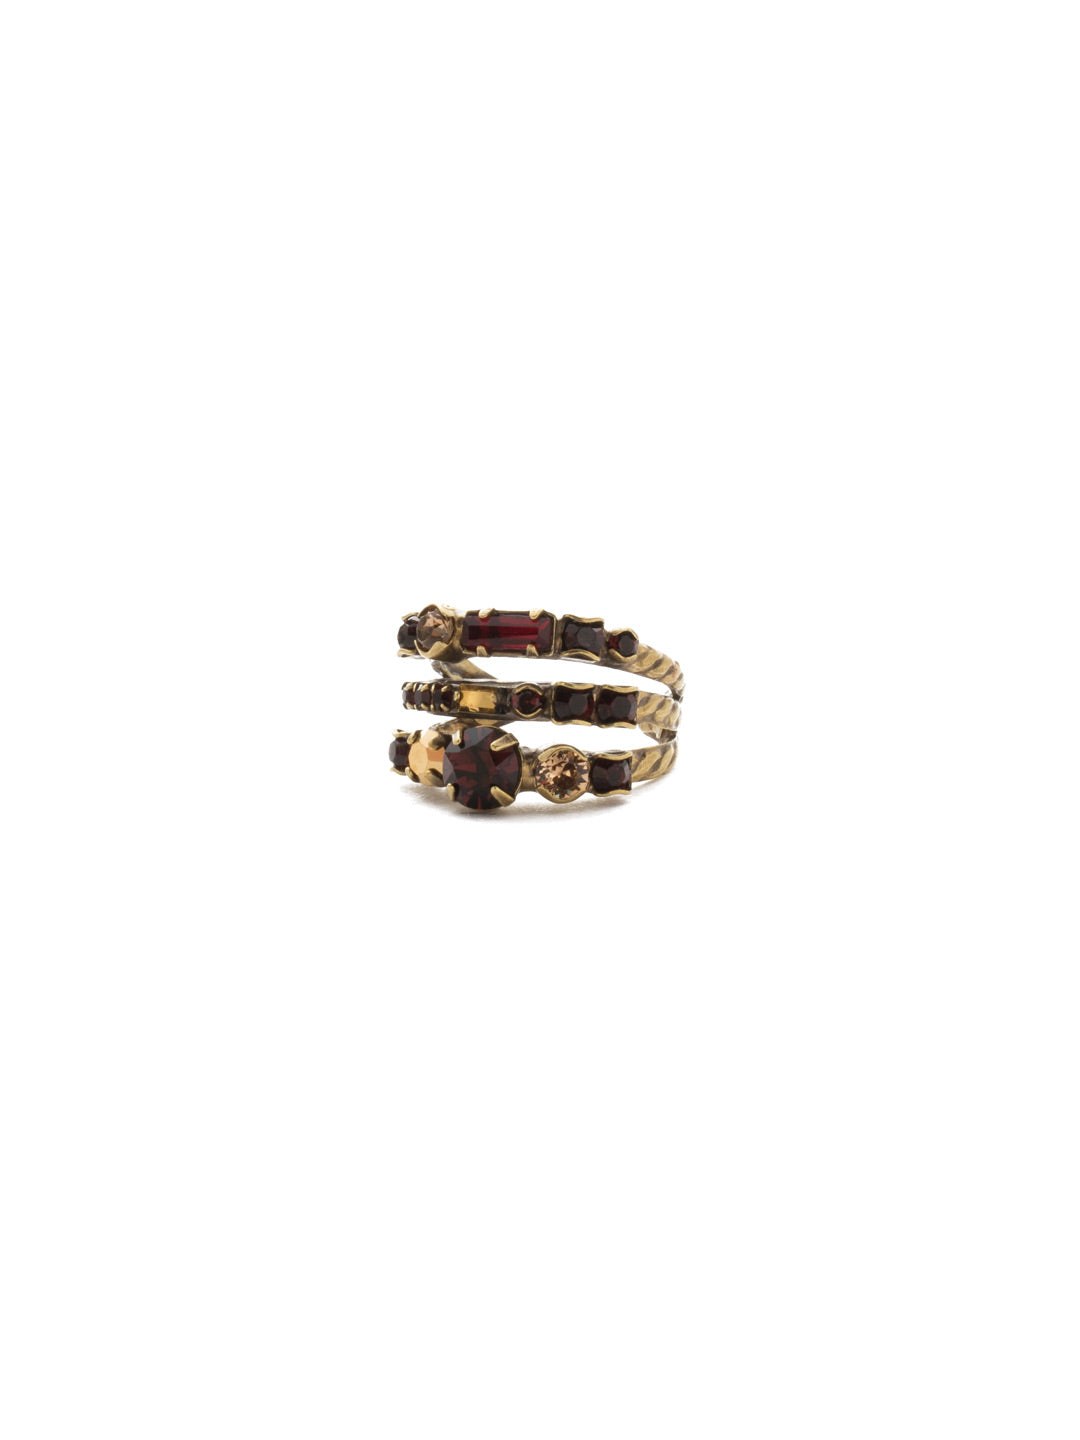 Triple Threat Stacked Ring - RDK23AGMMA